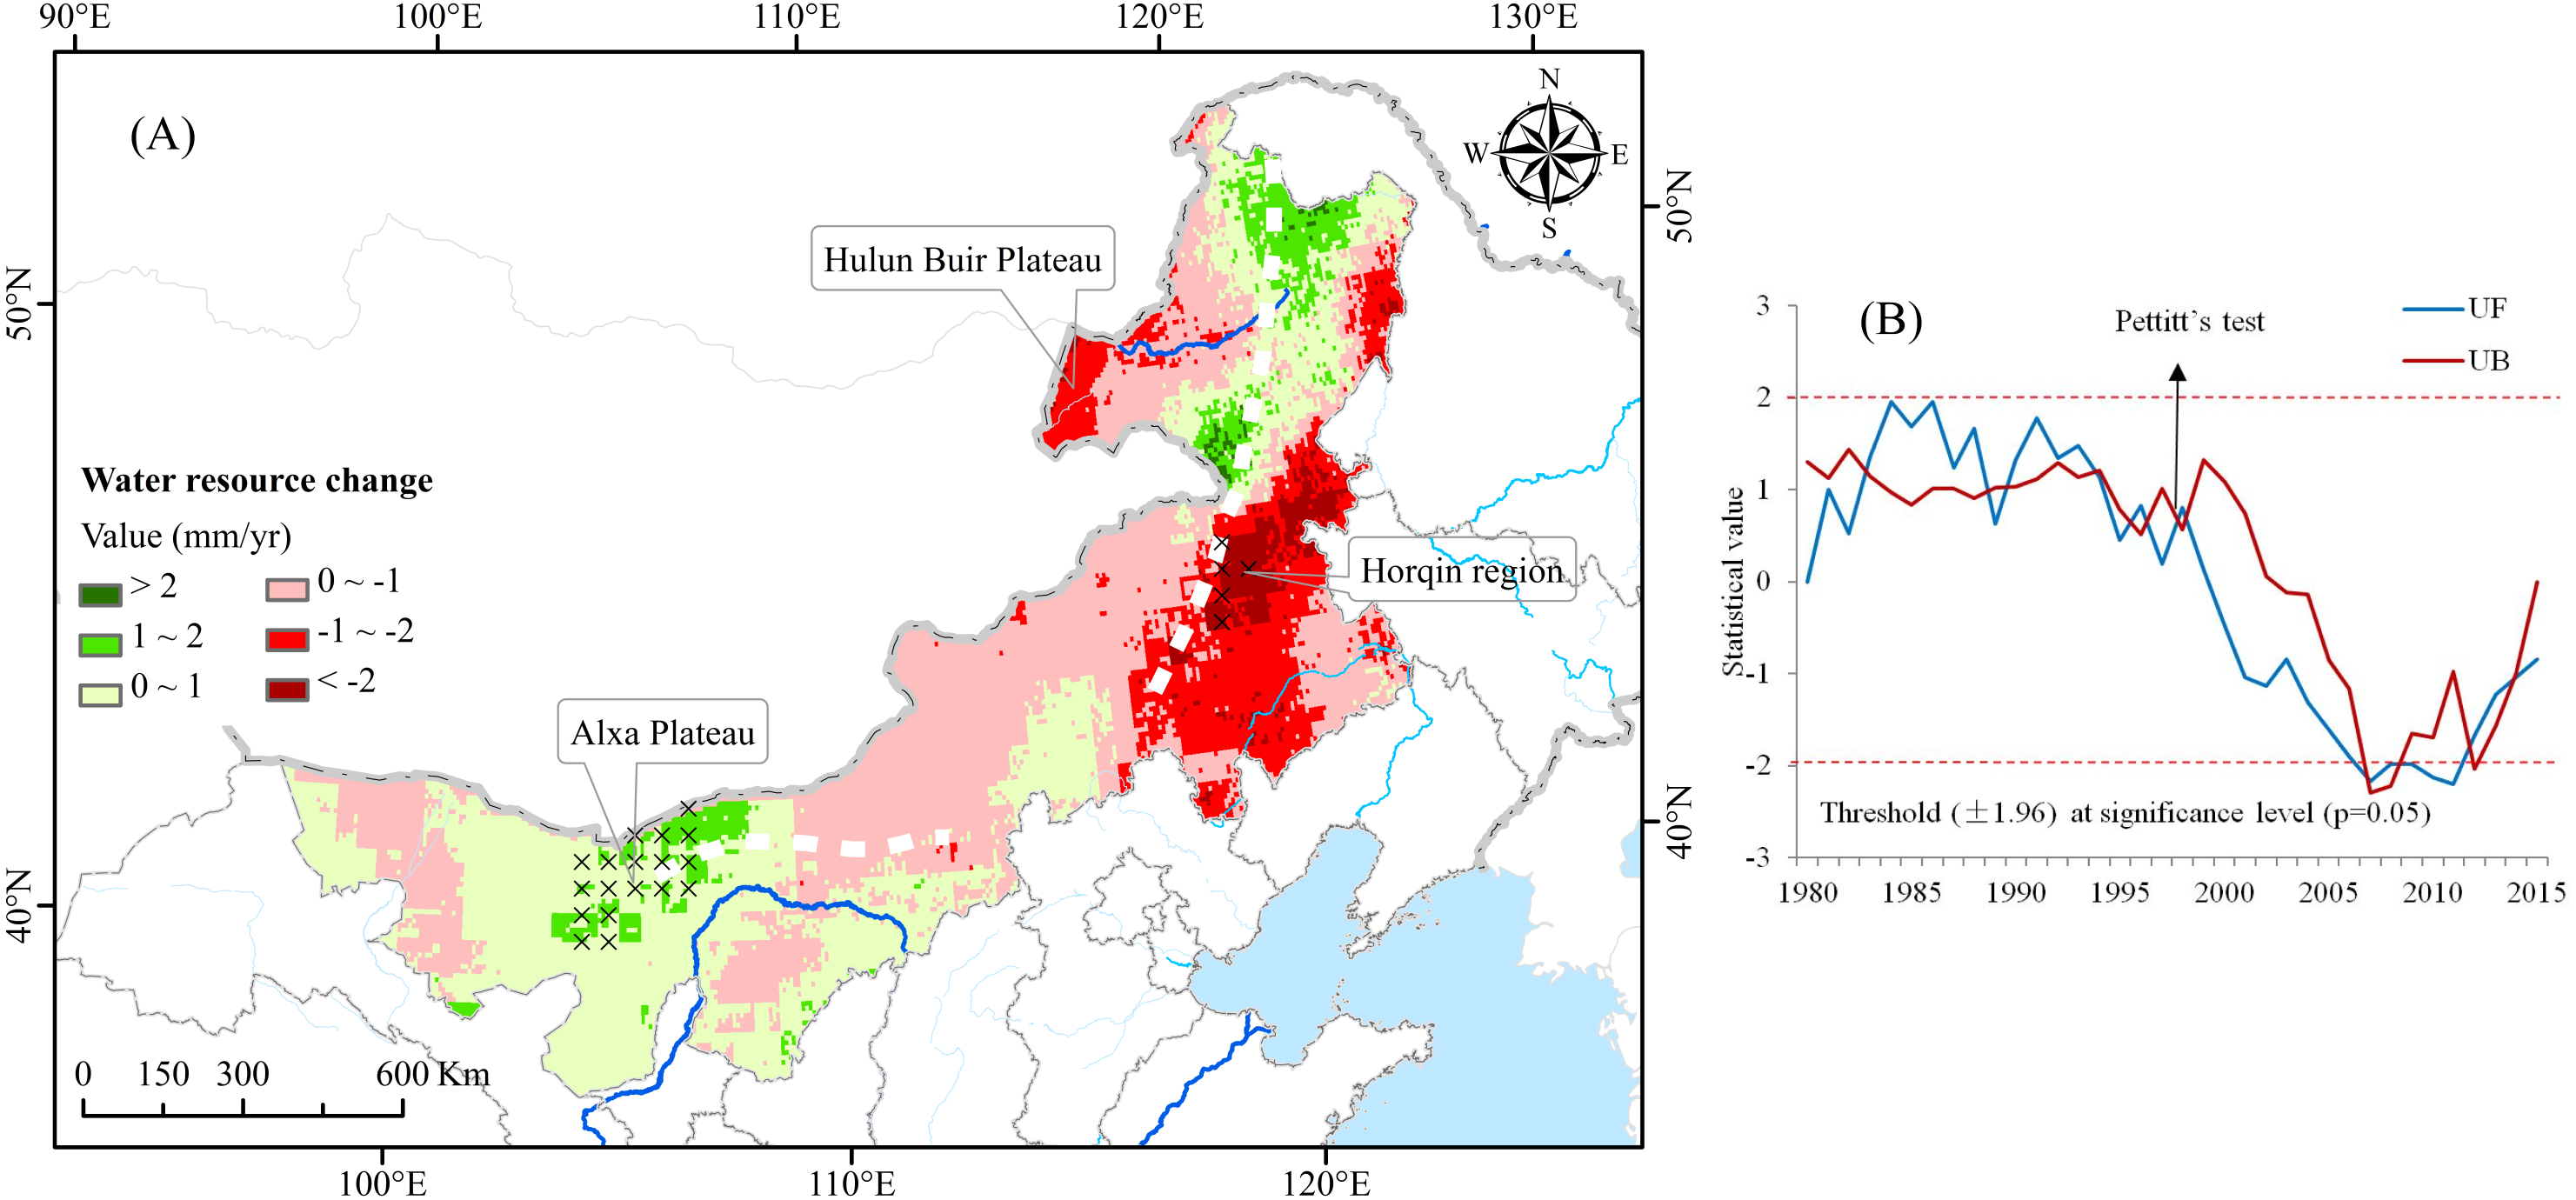 Effects of afforestation on water resource variations in the